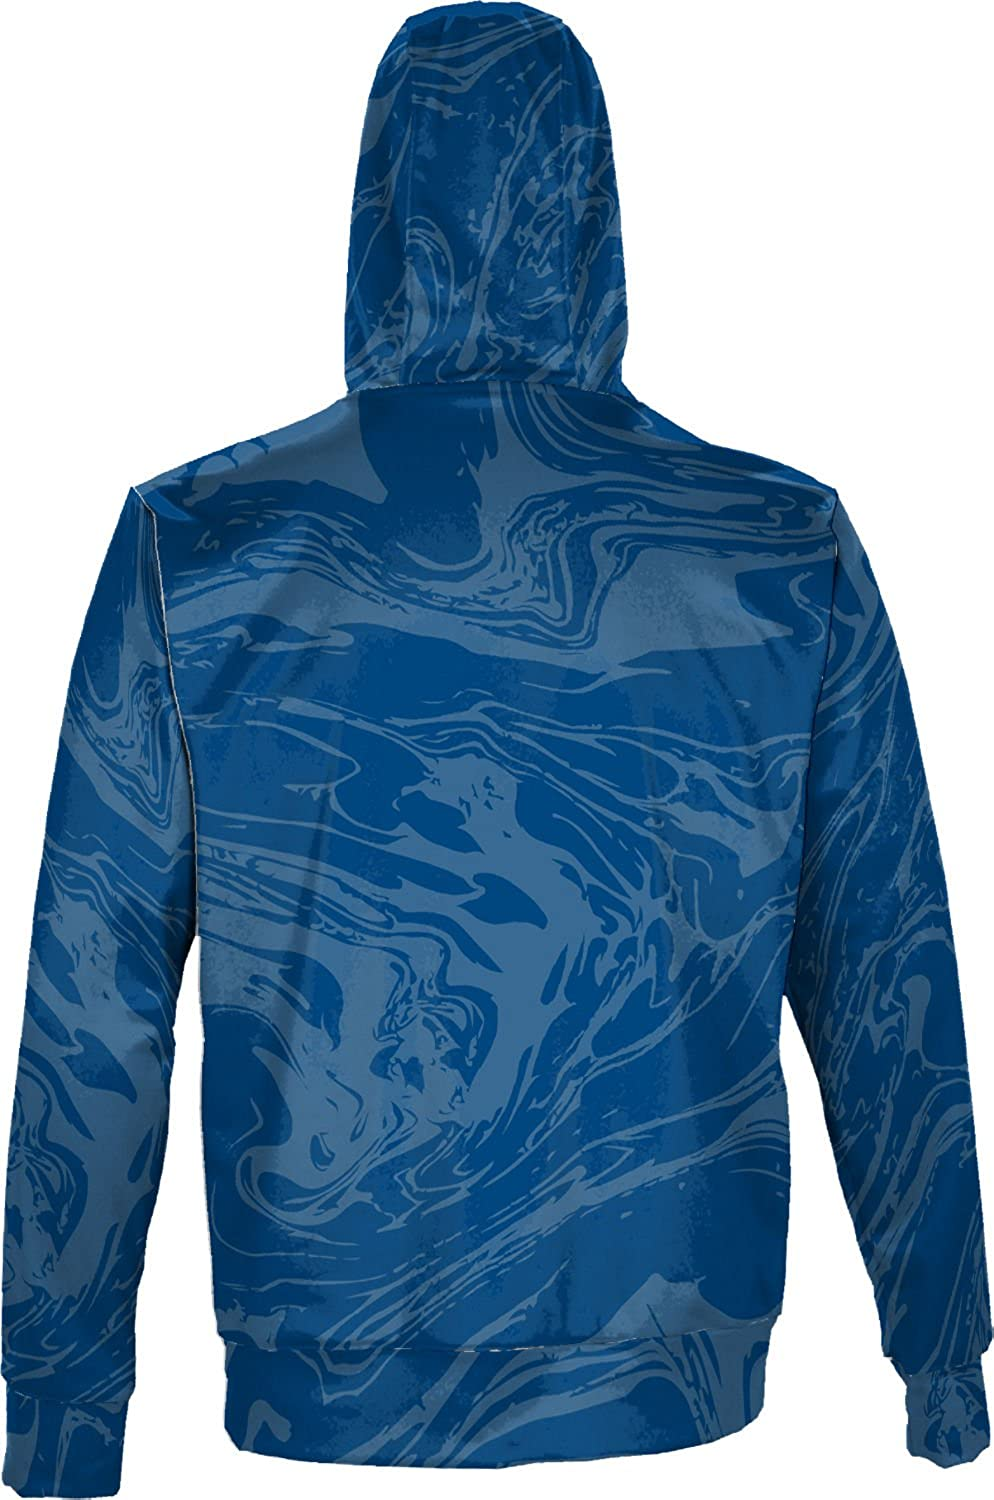 Ripple ProSphere Broward College Boys Pullover Hoodie